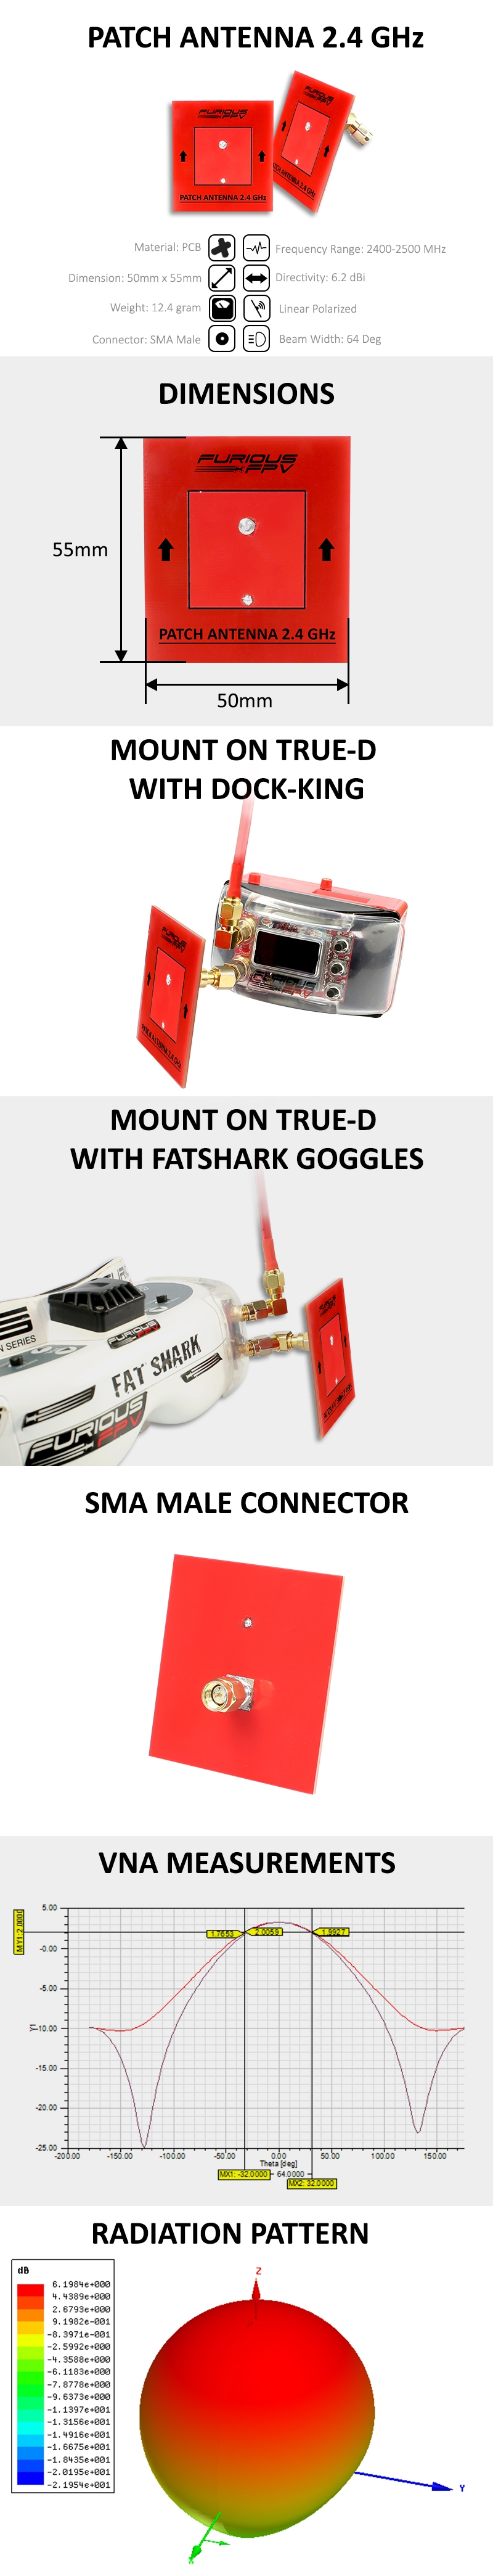 FuriousFPV 2.4GHz 6.2dBi Linear Polarized Patch FPV Antenna SMA Male for FPV Racing RC Drone